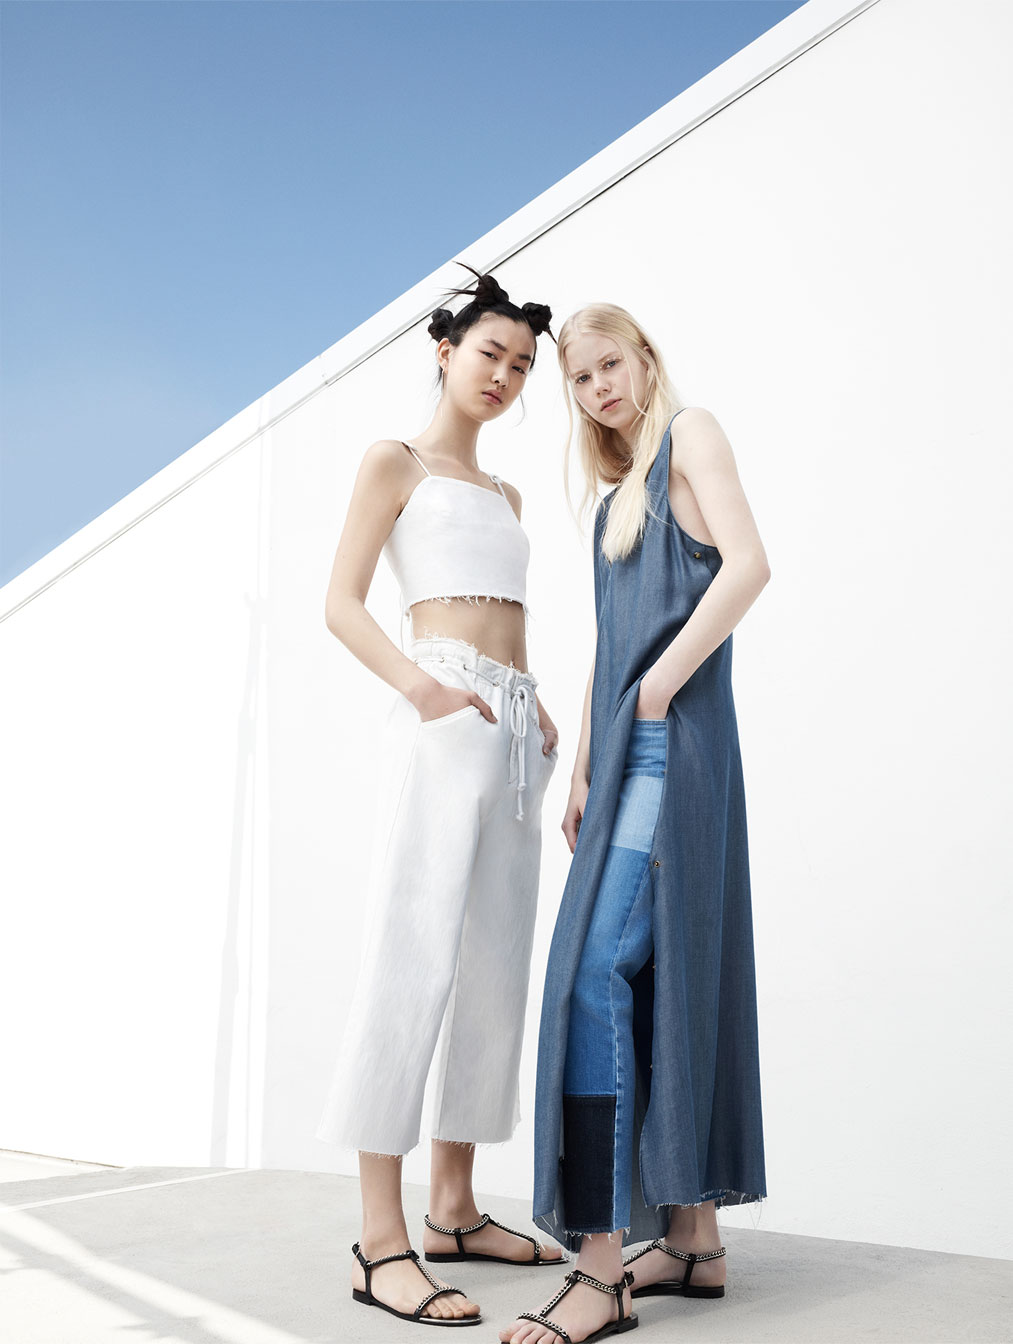 Denim looks from Zara's ' I am Denim ' campaign.